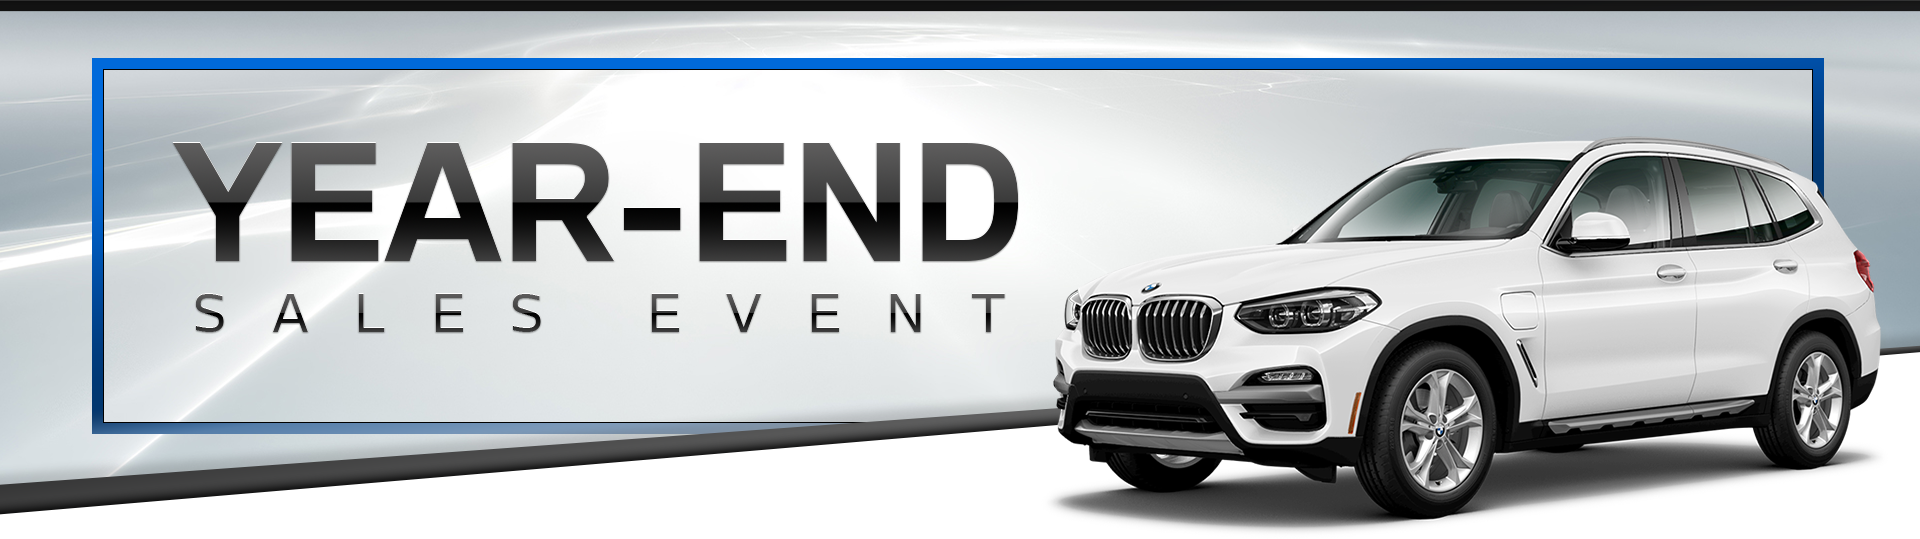 BMW of Columbia Year-End Sales Event